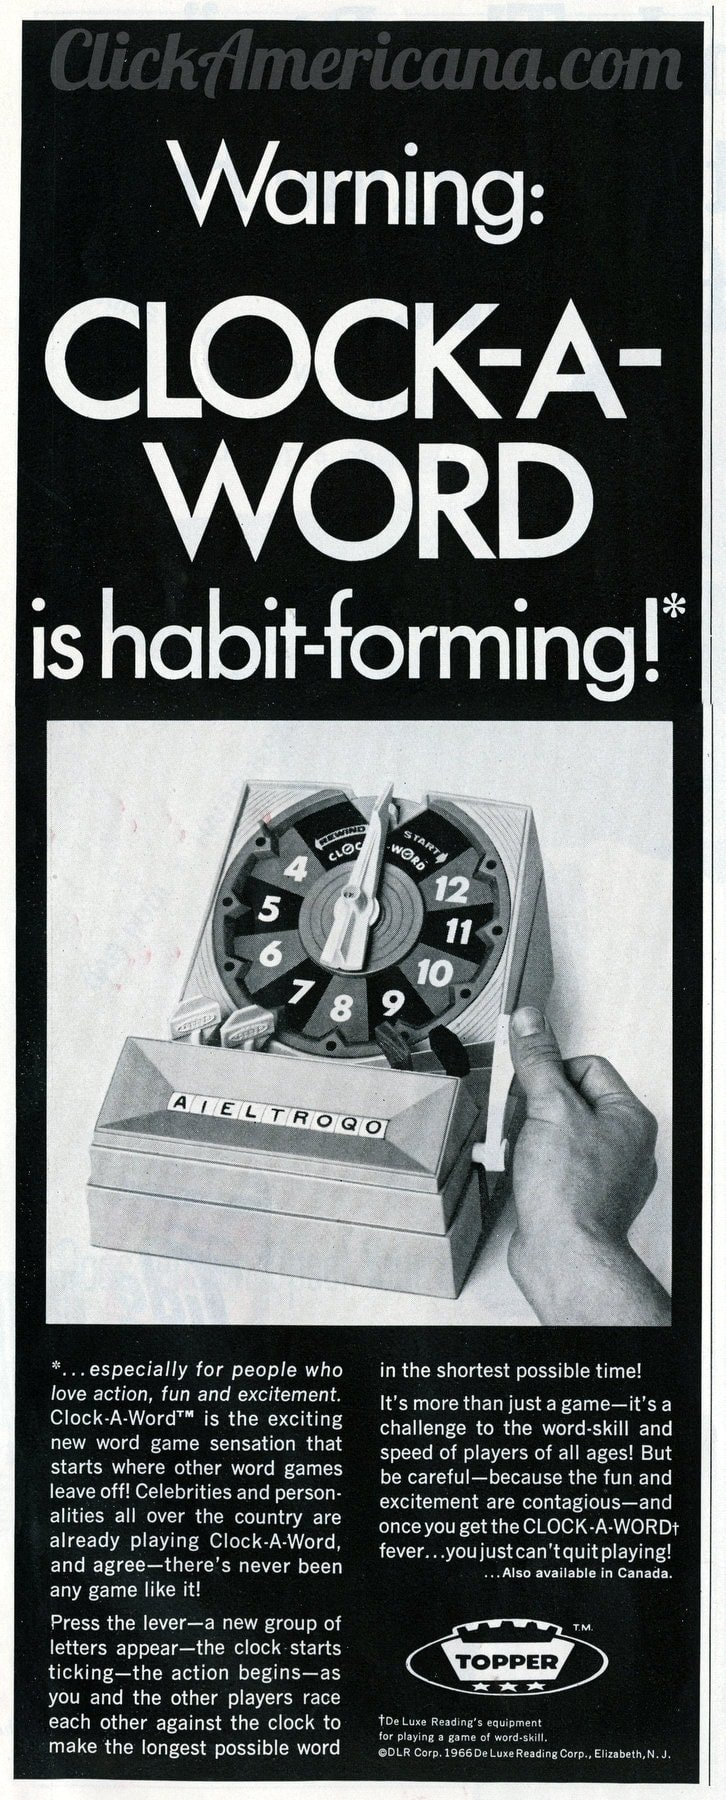 Remember the old Clock-A-Word puzzle game from the '60s